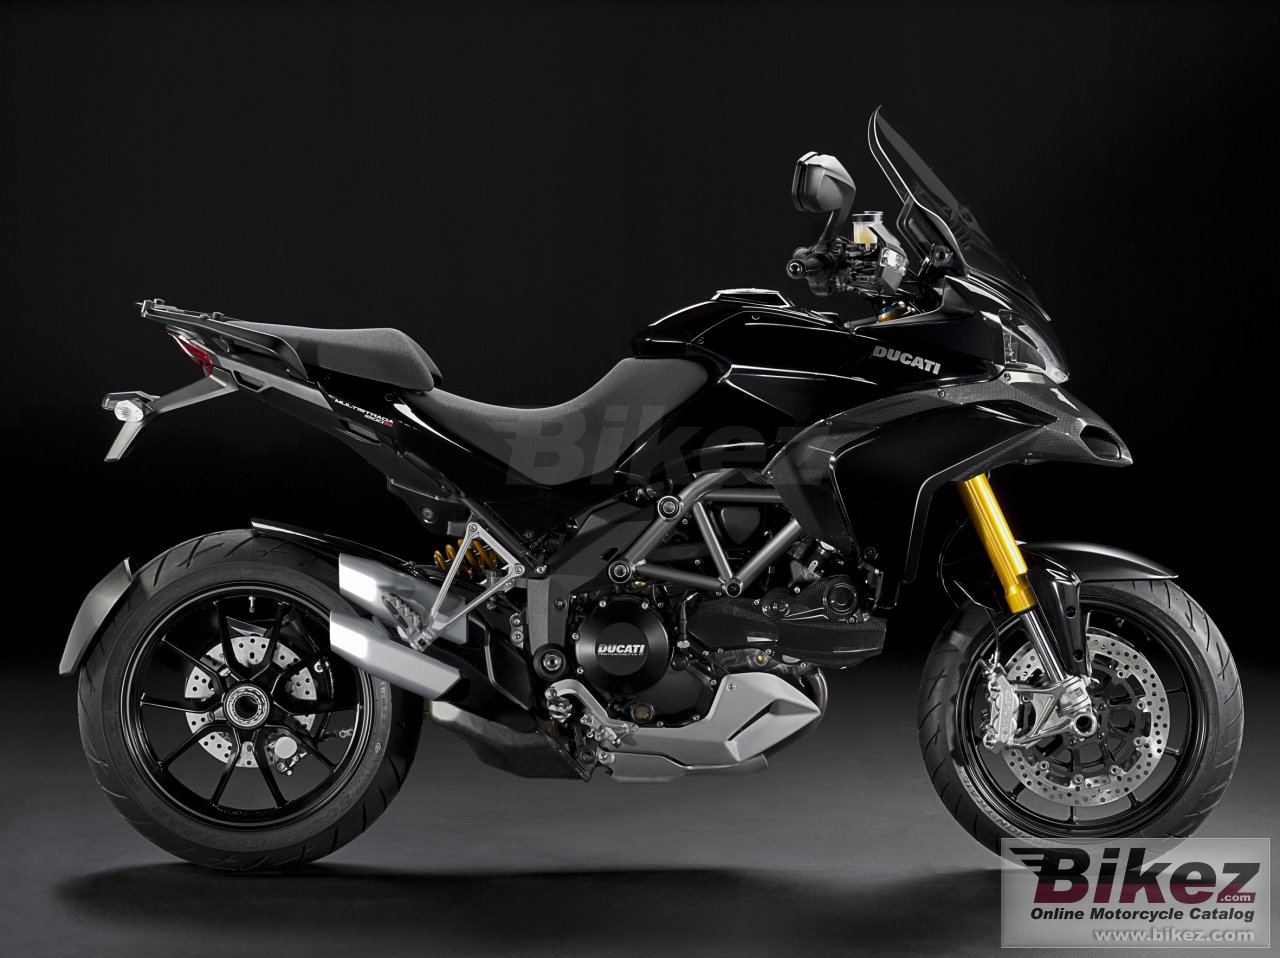 Big Ducati multistrada 1200 s picture and wallpaper from Bikez.com